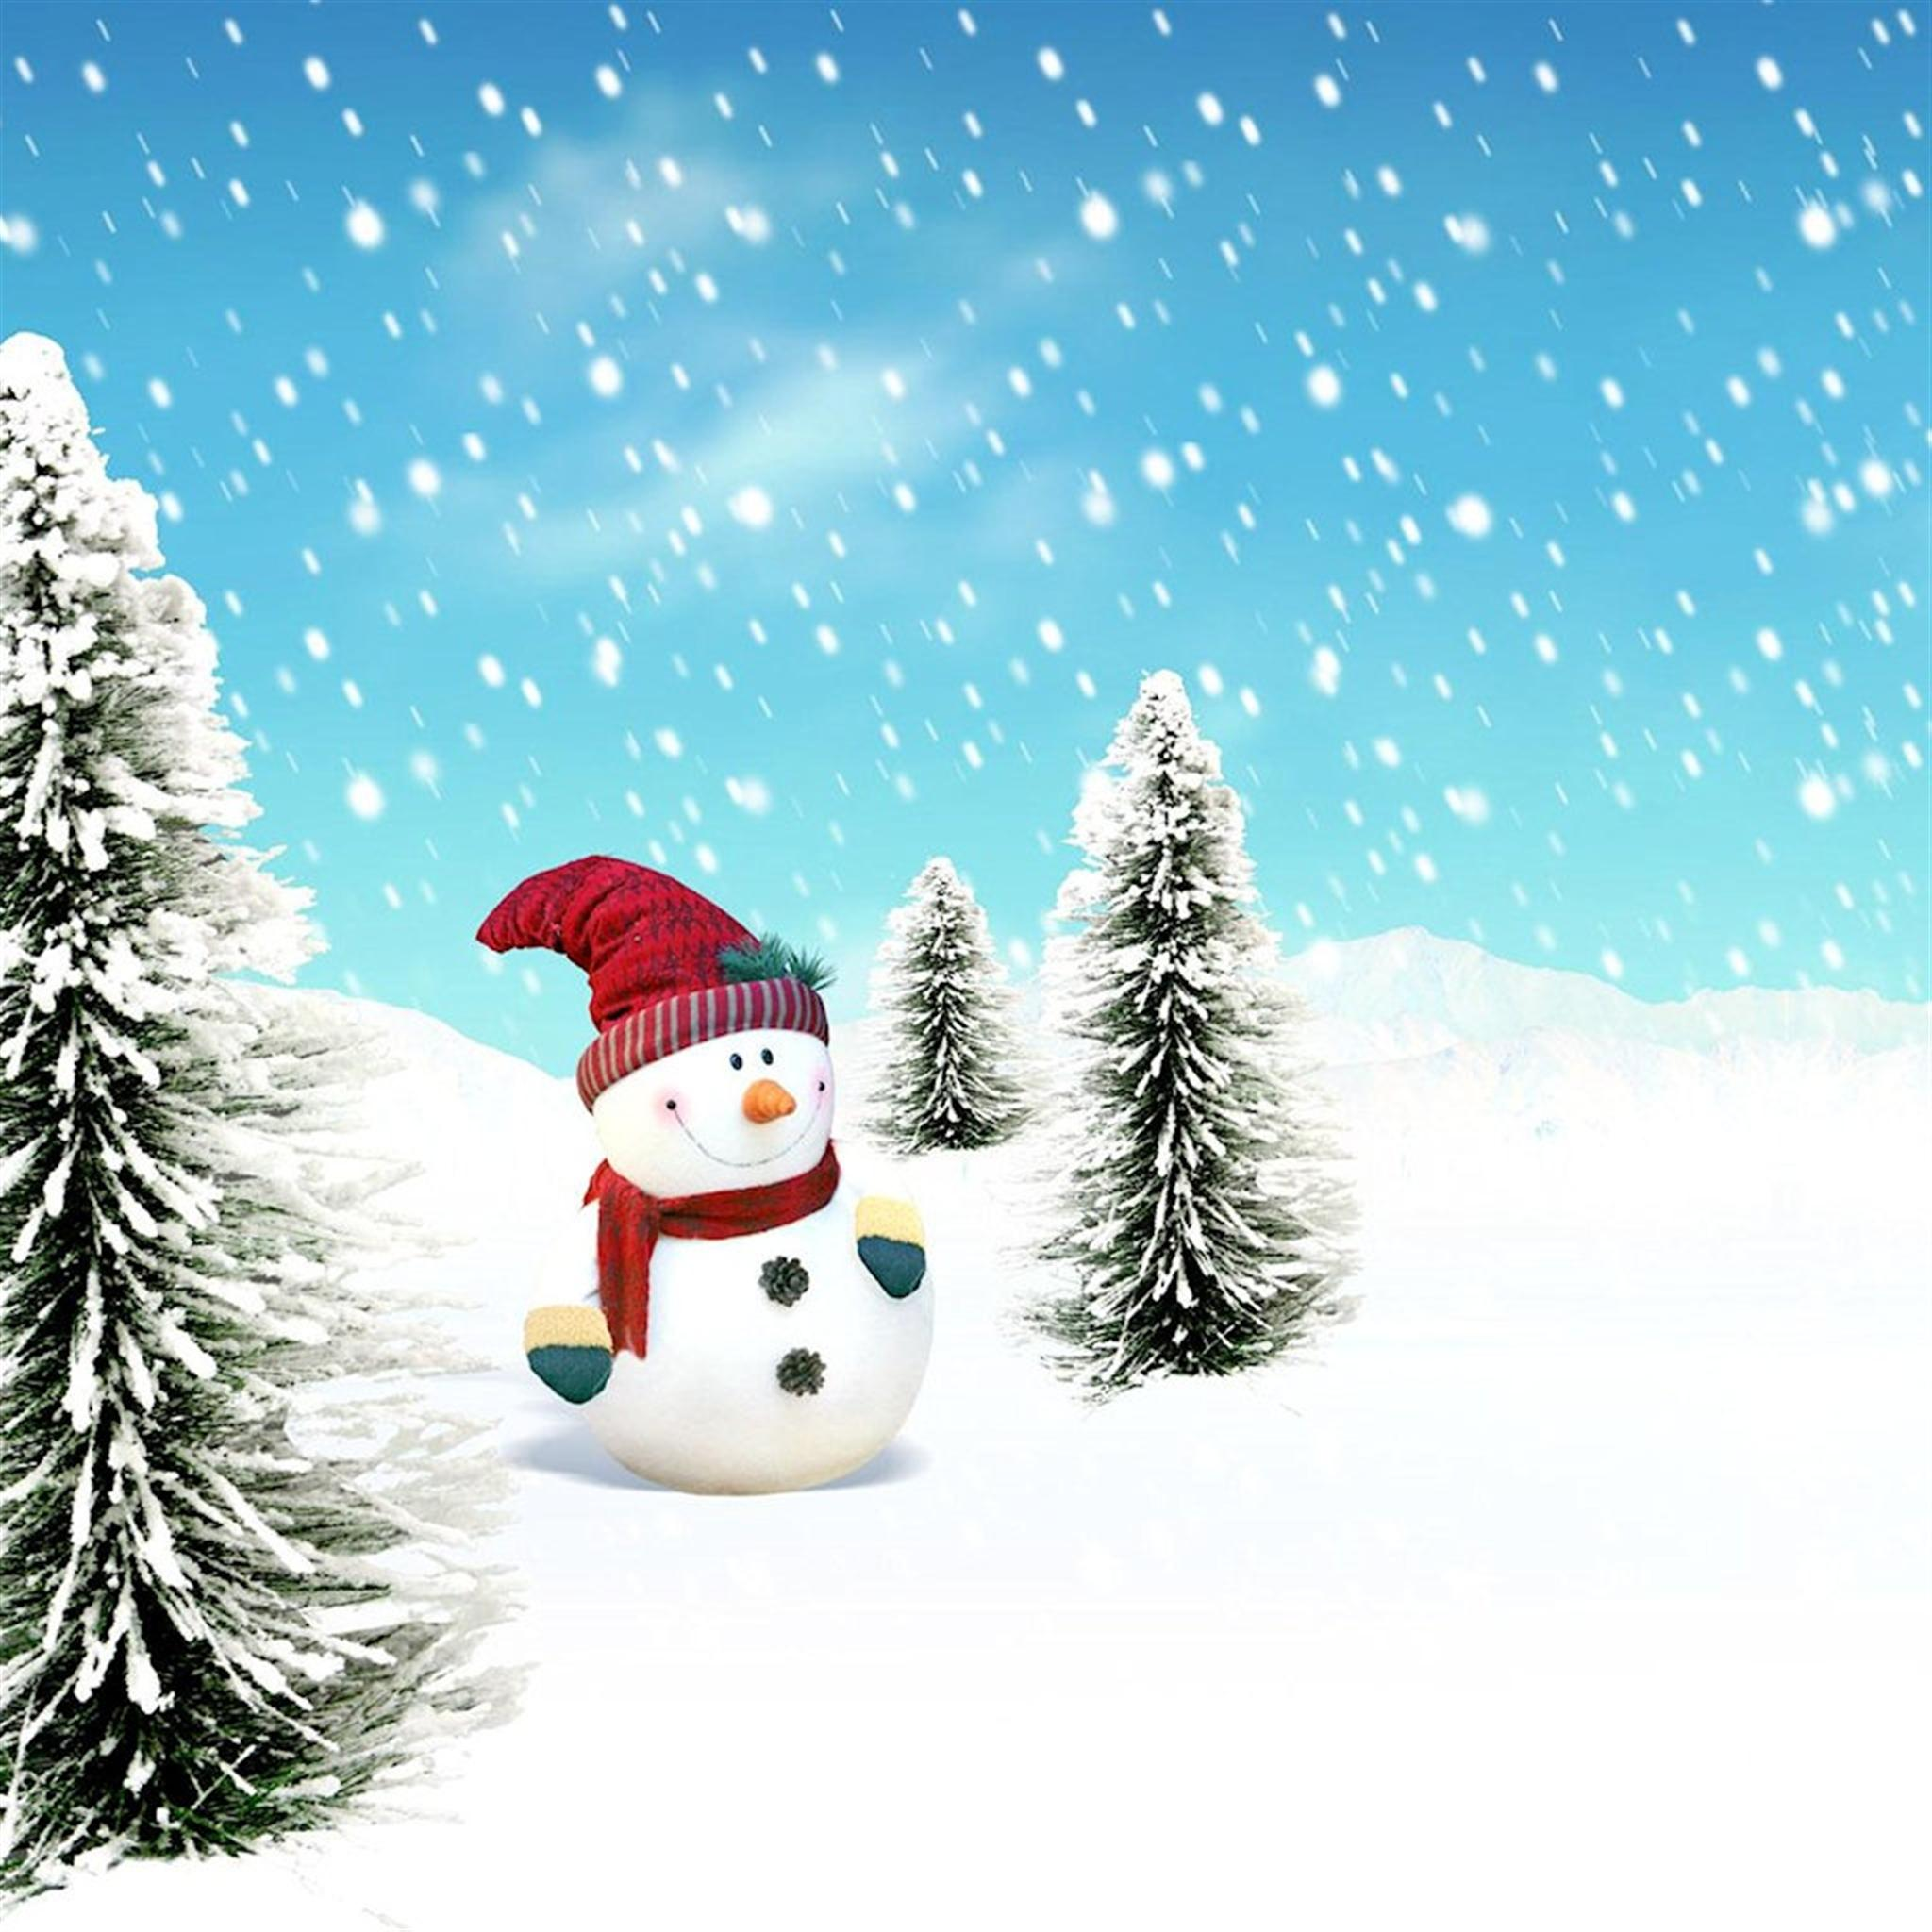 49+] Christmas Wallpaper for iPad Air on WallpaperSafari